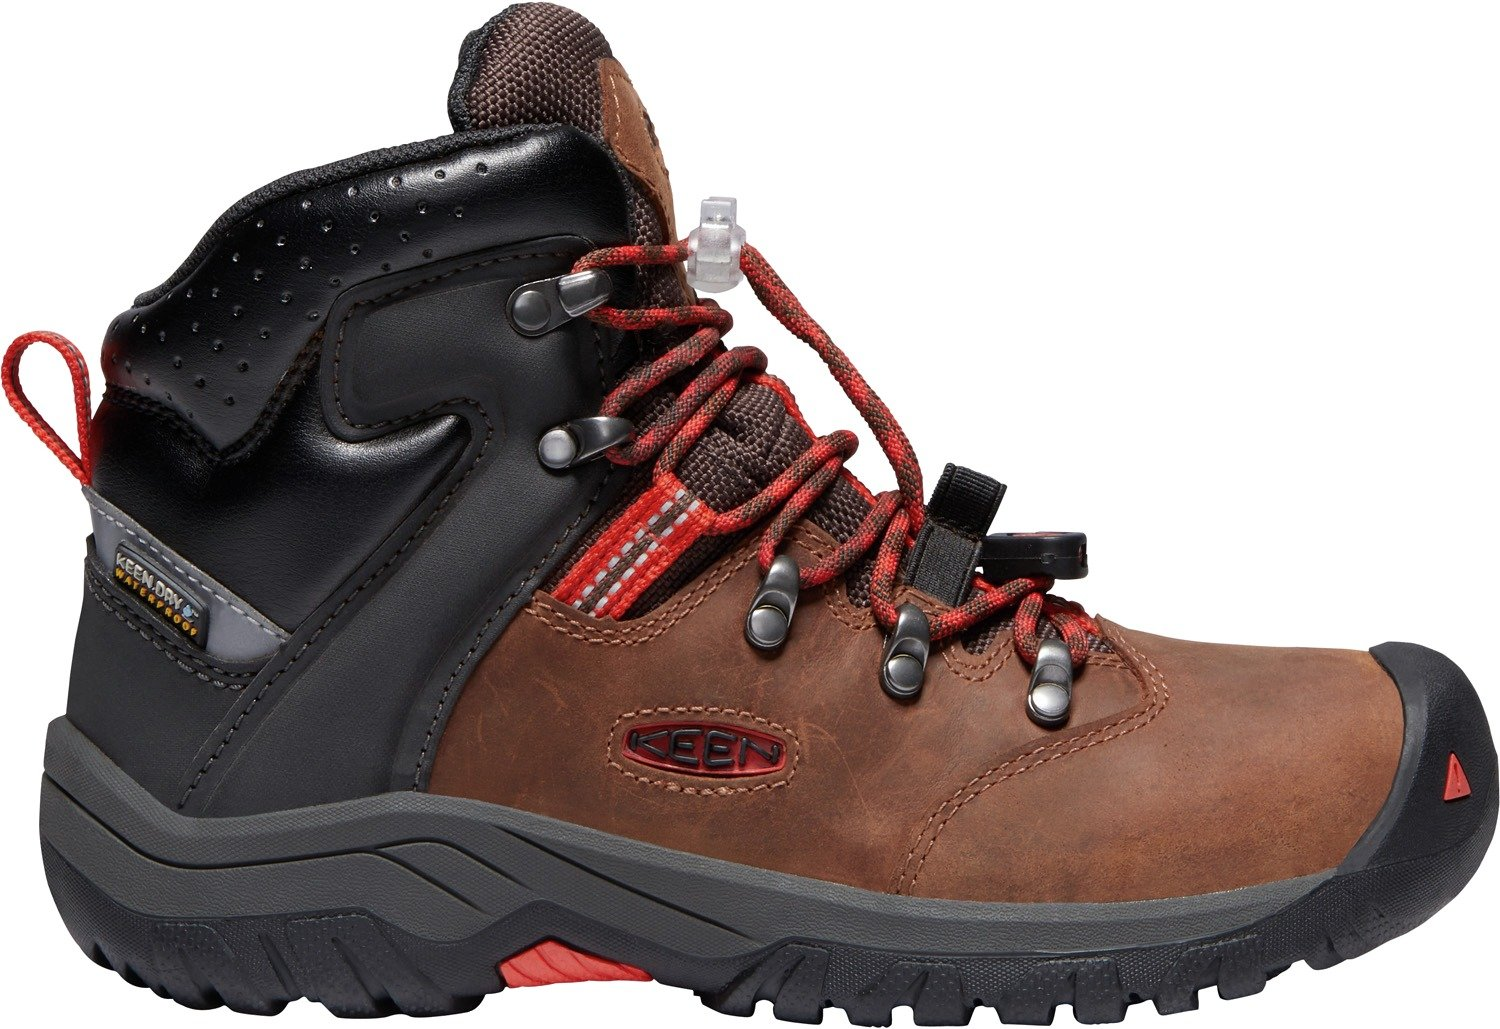 KEEN - Kids Torino II Mid Waterproof Winter Boots,Tortoise Shell/Firey Red,5 M US Big Kid